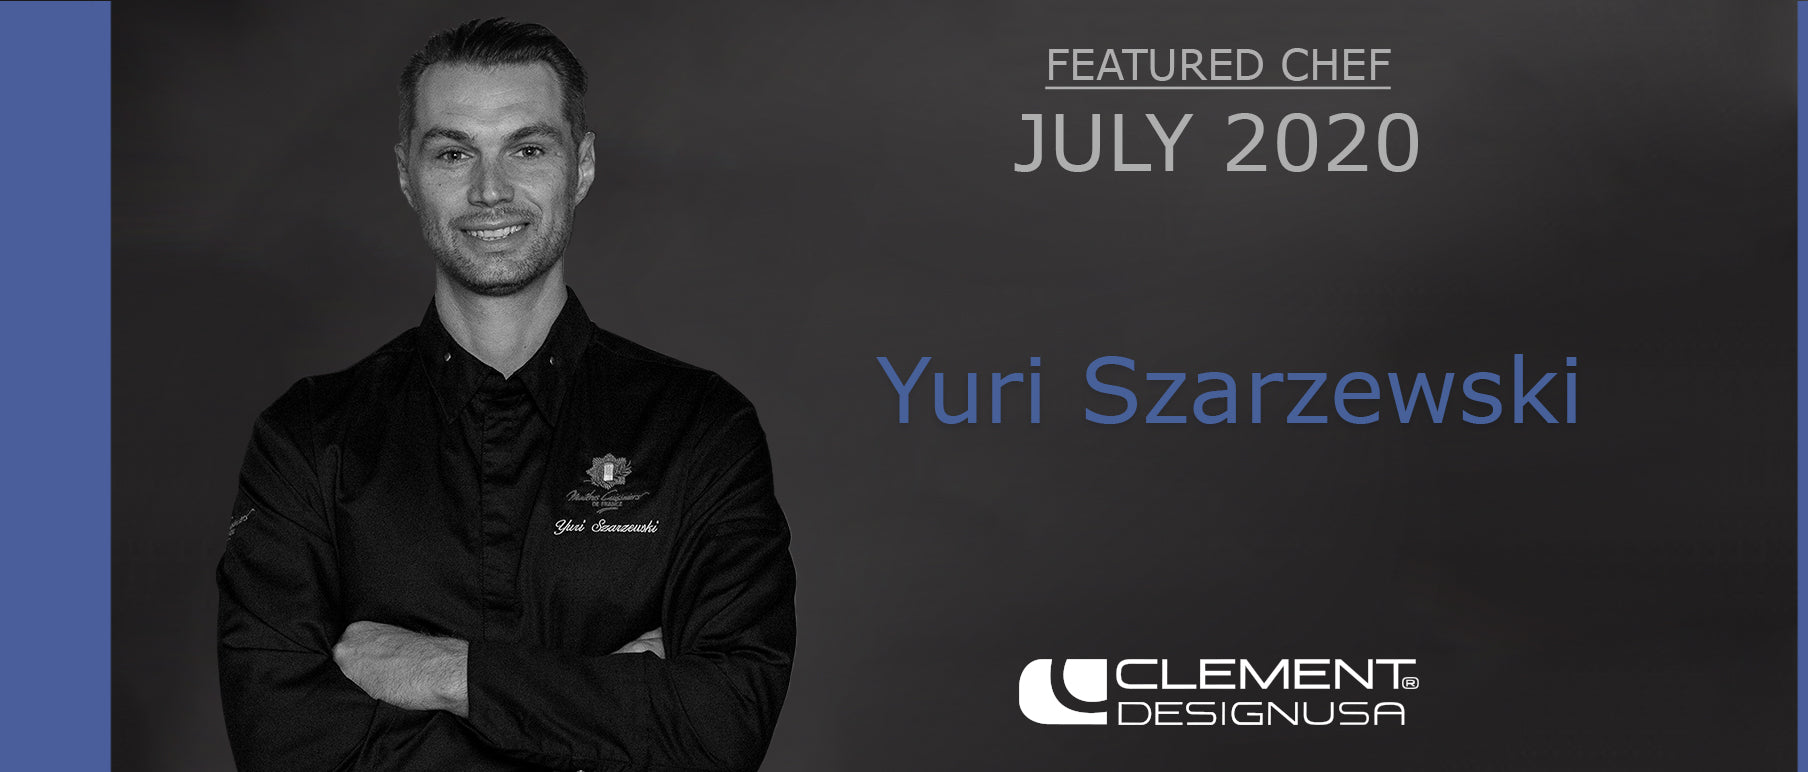 July 2020 Featured Chef: Yuri Szarzewski